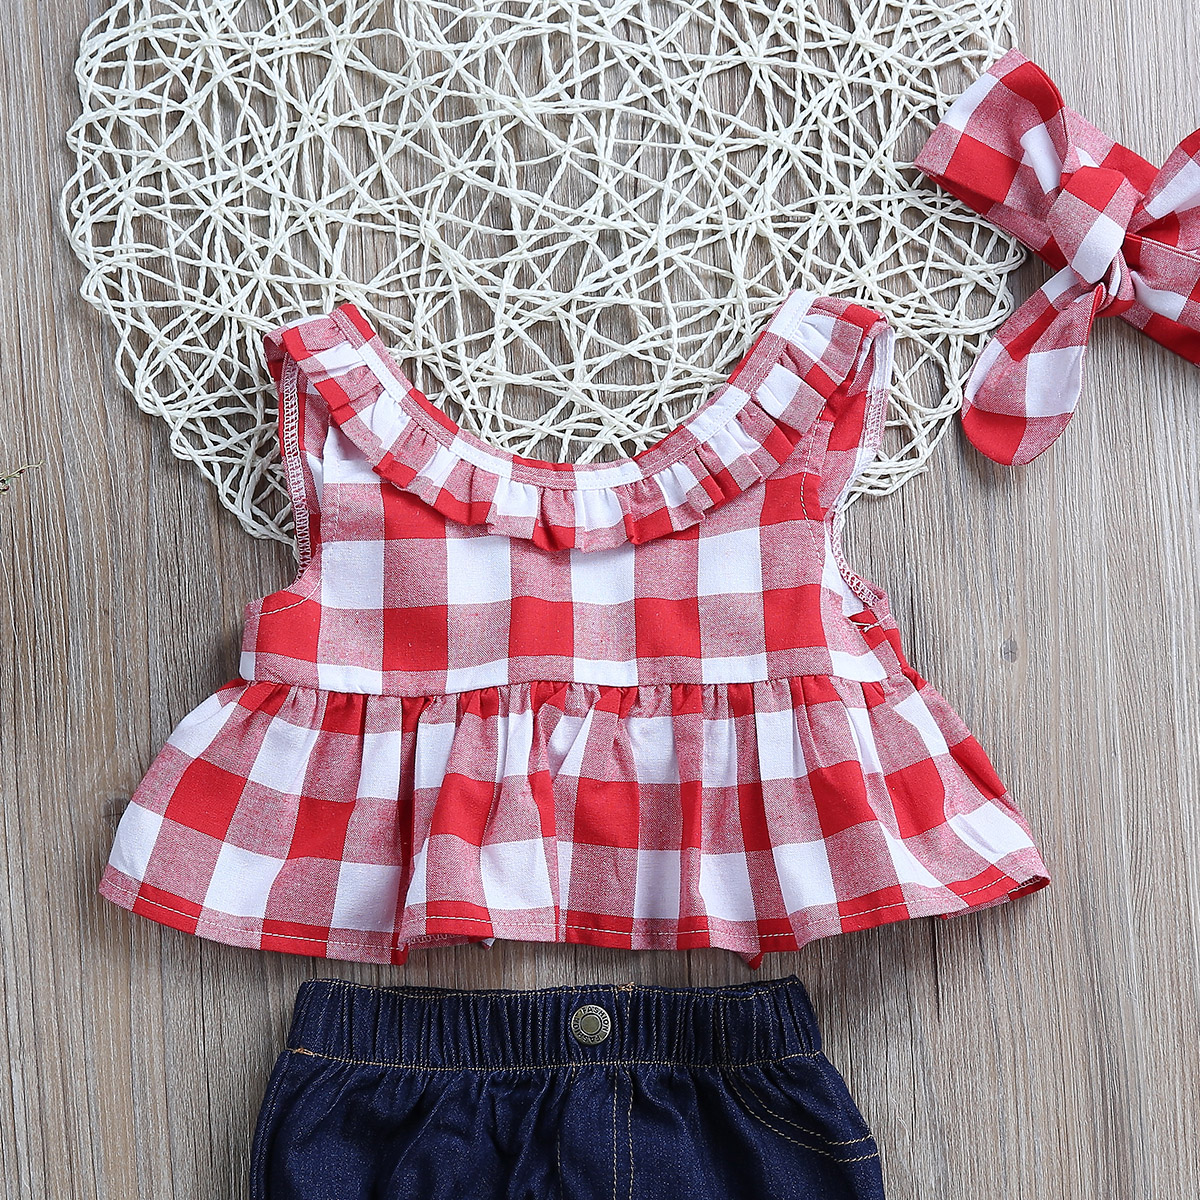 Tops-Sleeveless-Plaid-T-Shirts-Jeans-Shorts-Headband-Kids-Clothing-Outfits-Infant-Kids-Baby-Girls-Clothes-Sets-Outfit-Sleeveless-3